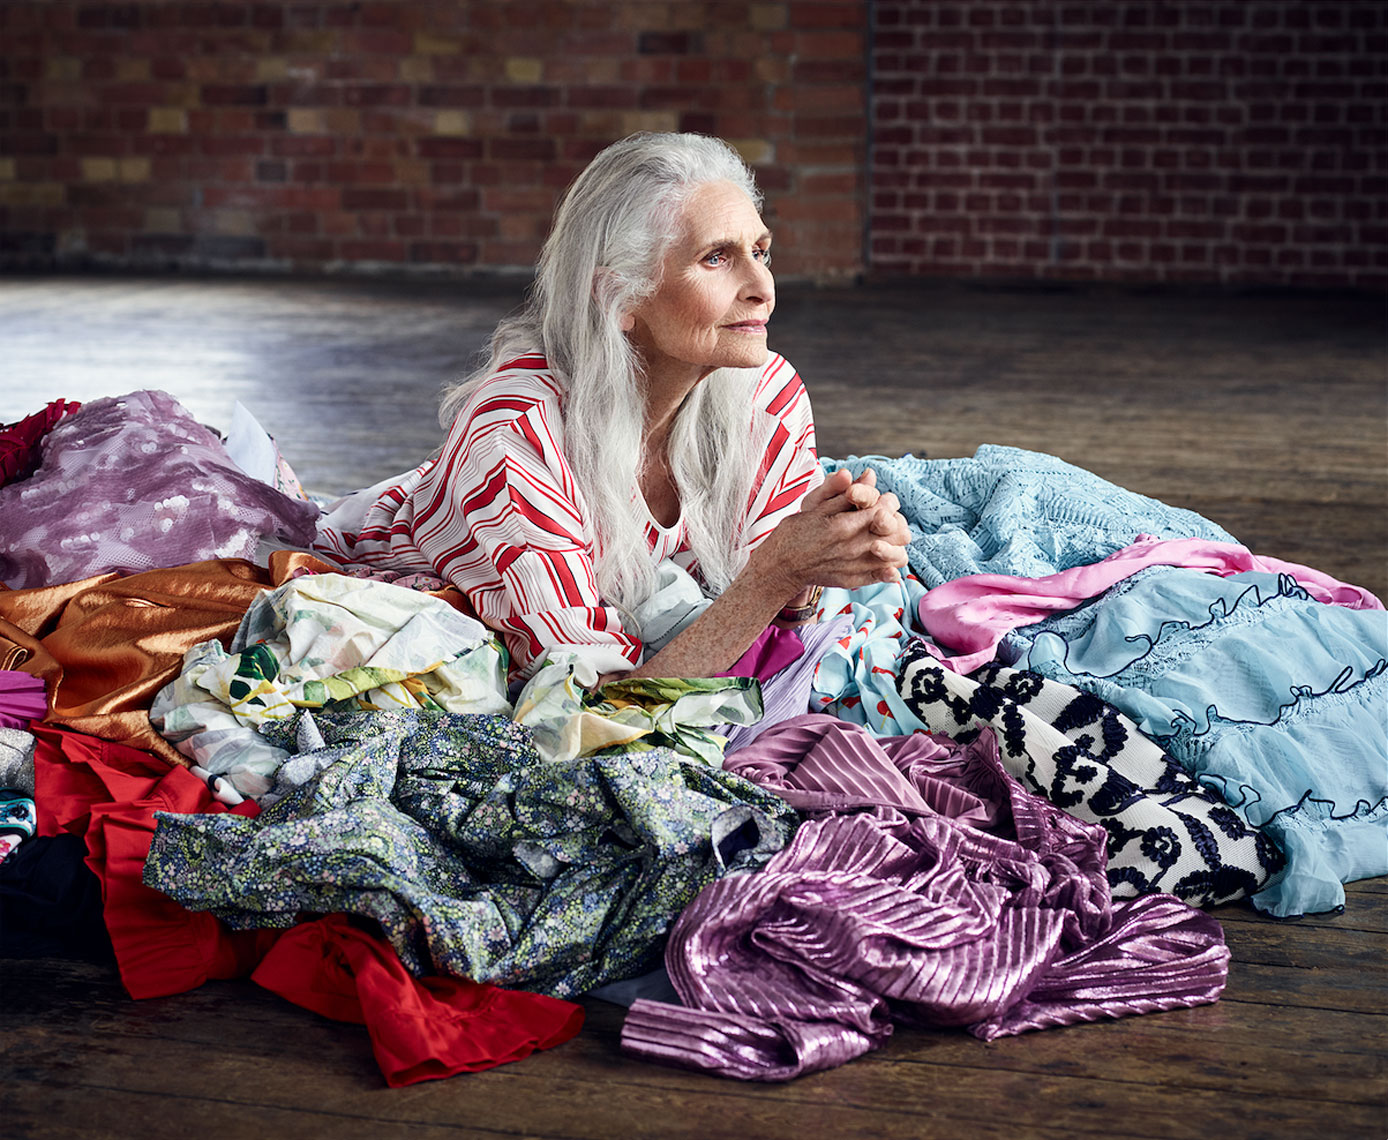 issie-gibbons-fashion-stylist-gucfg-daphne-selfe-tk-maxx-cancer-research-celebrity-campaign